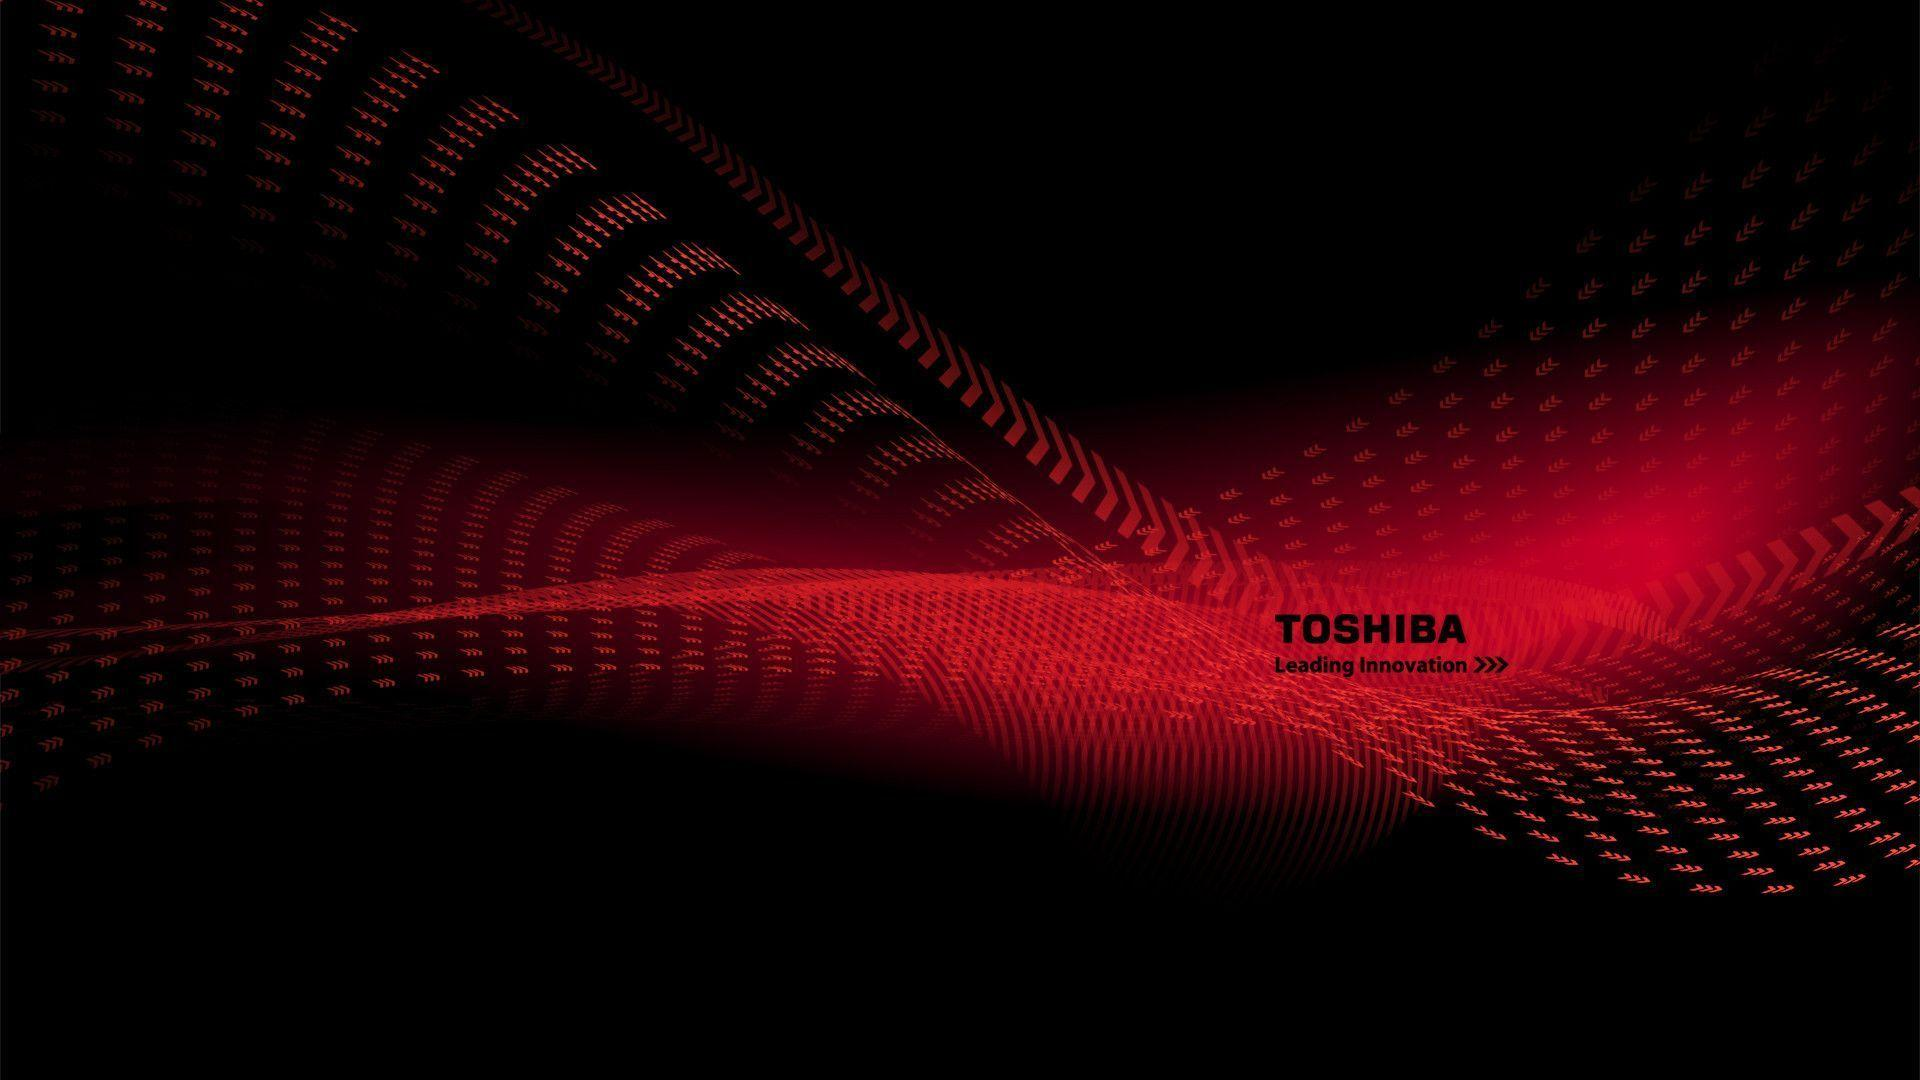 Toshiba backgrounds pictures wallpaper cave Innovation windows